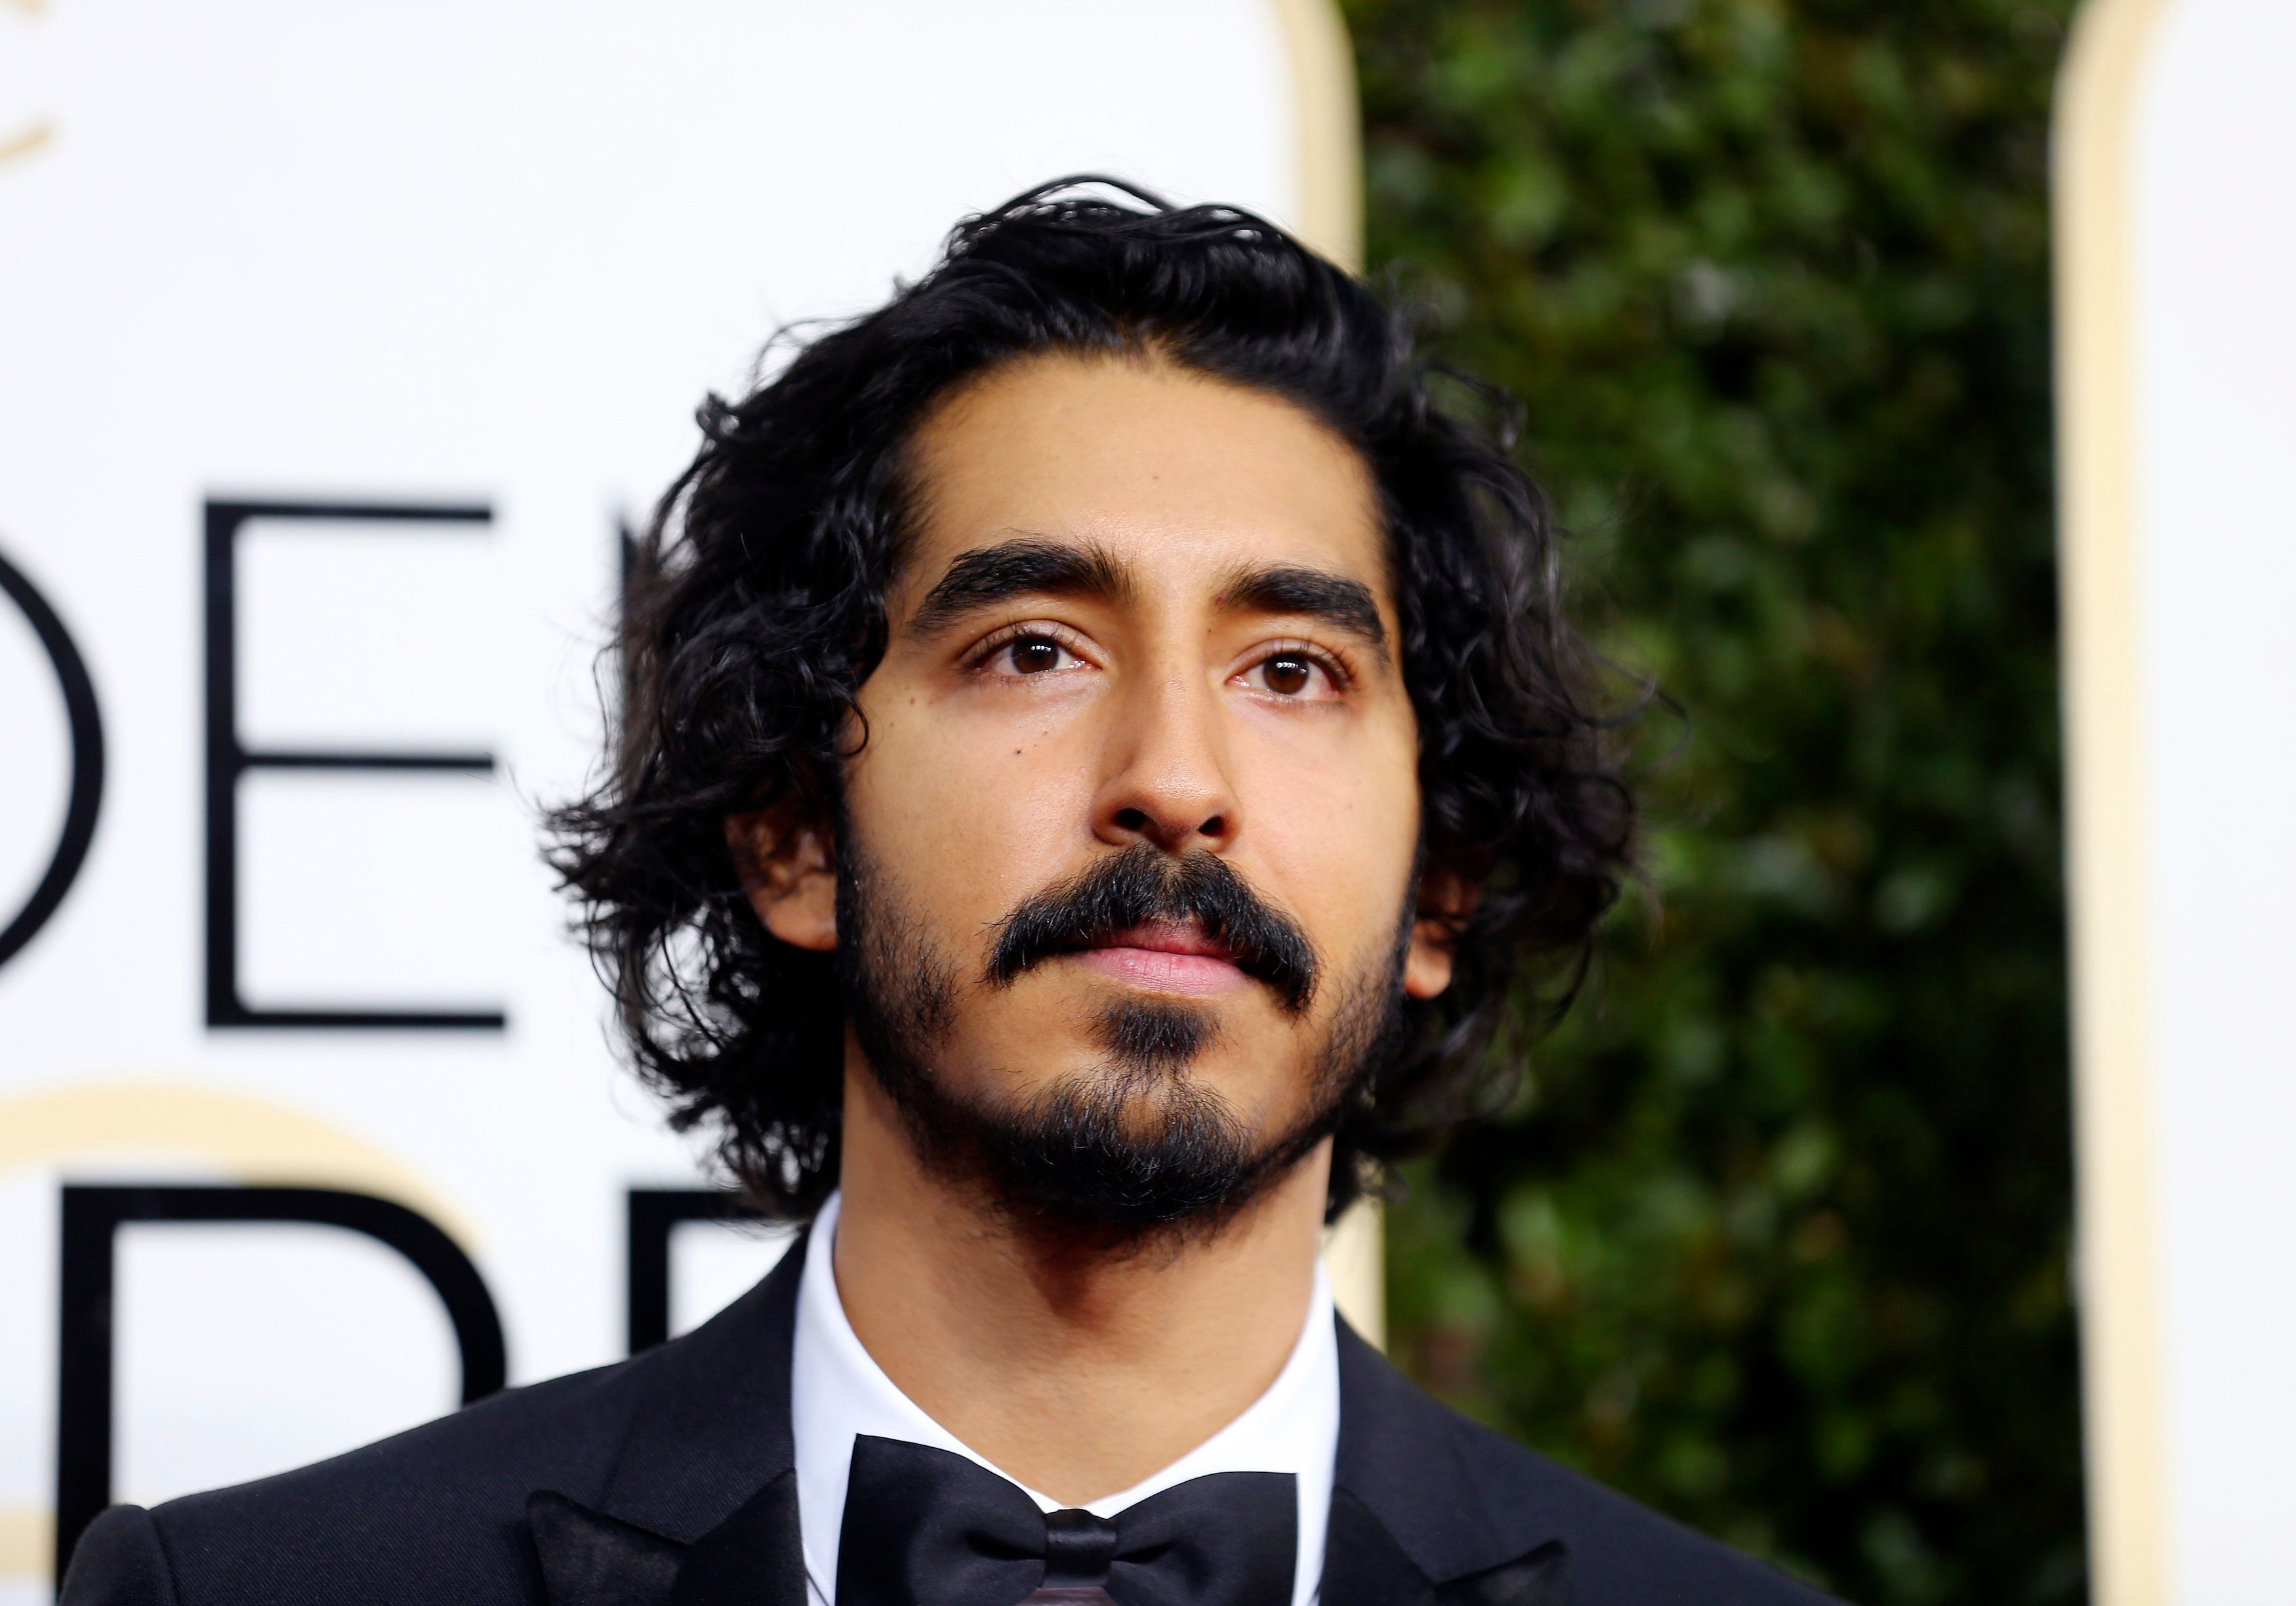 Oscar nominee Dev Patel has told of the 'nightmare' of flying into the US after Donald Trump's travel